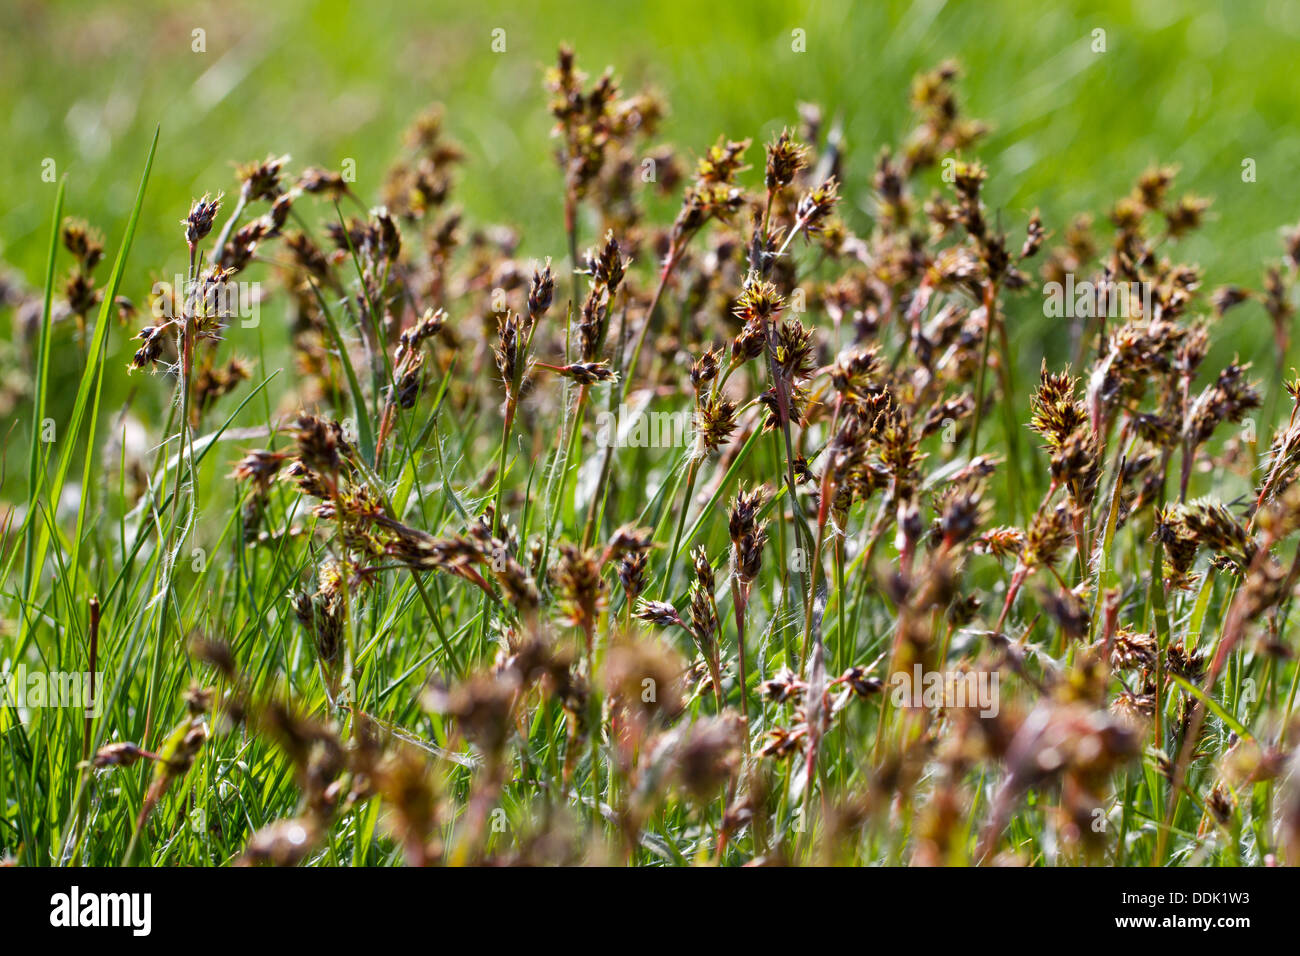 Field Woodrush (Luzula campestris) flowering in grassland. Powys, Wales. May. - Stock Image